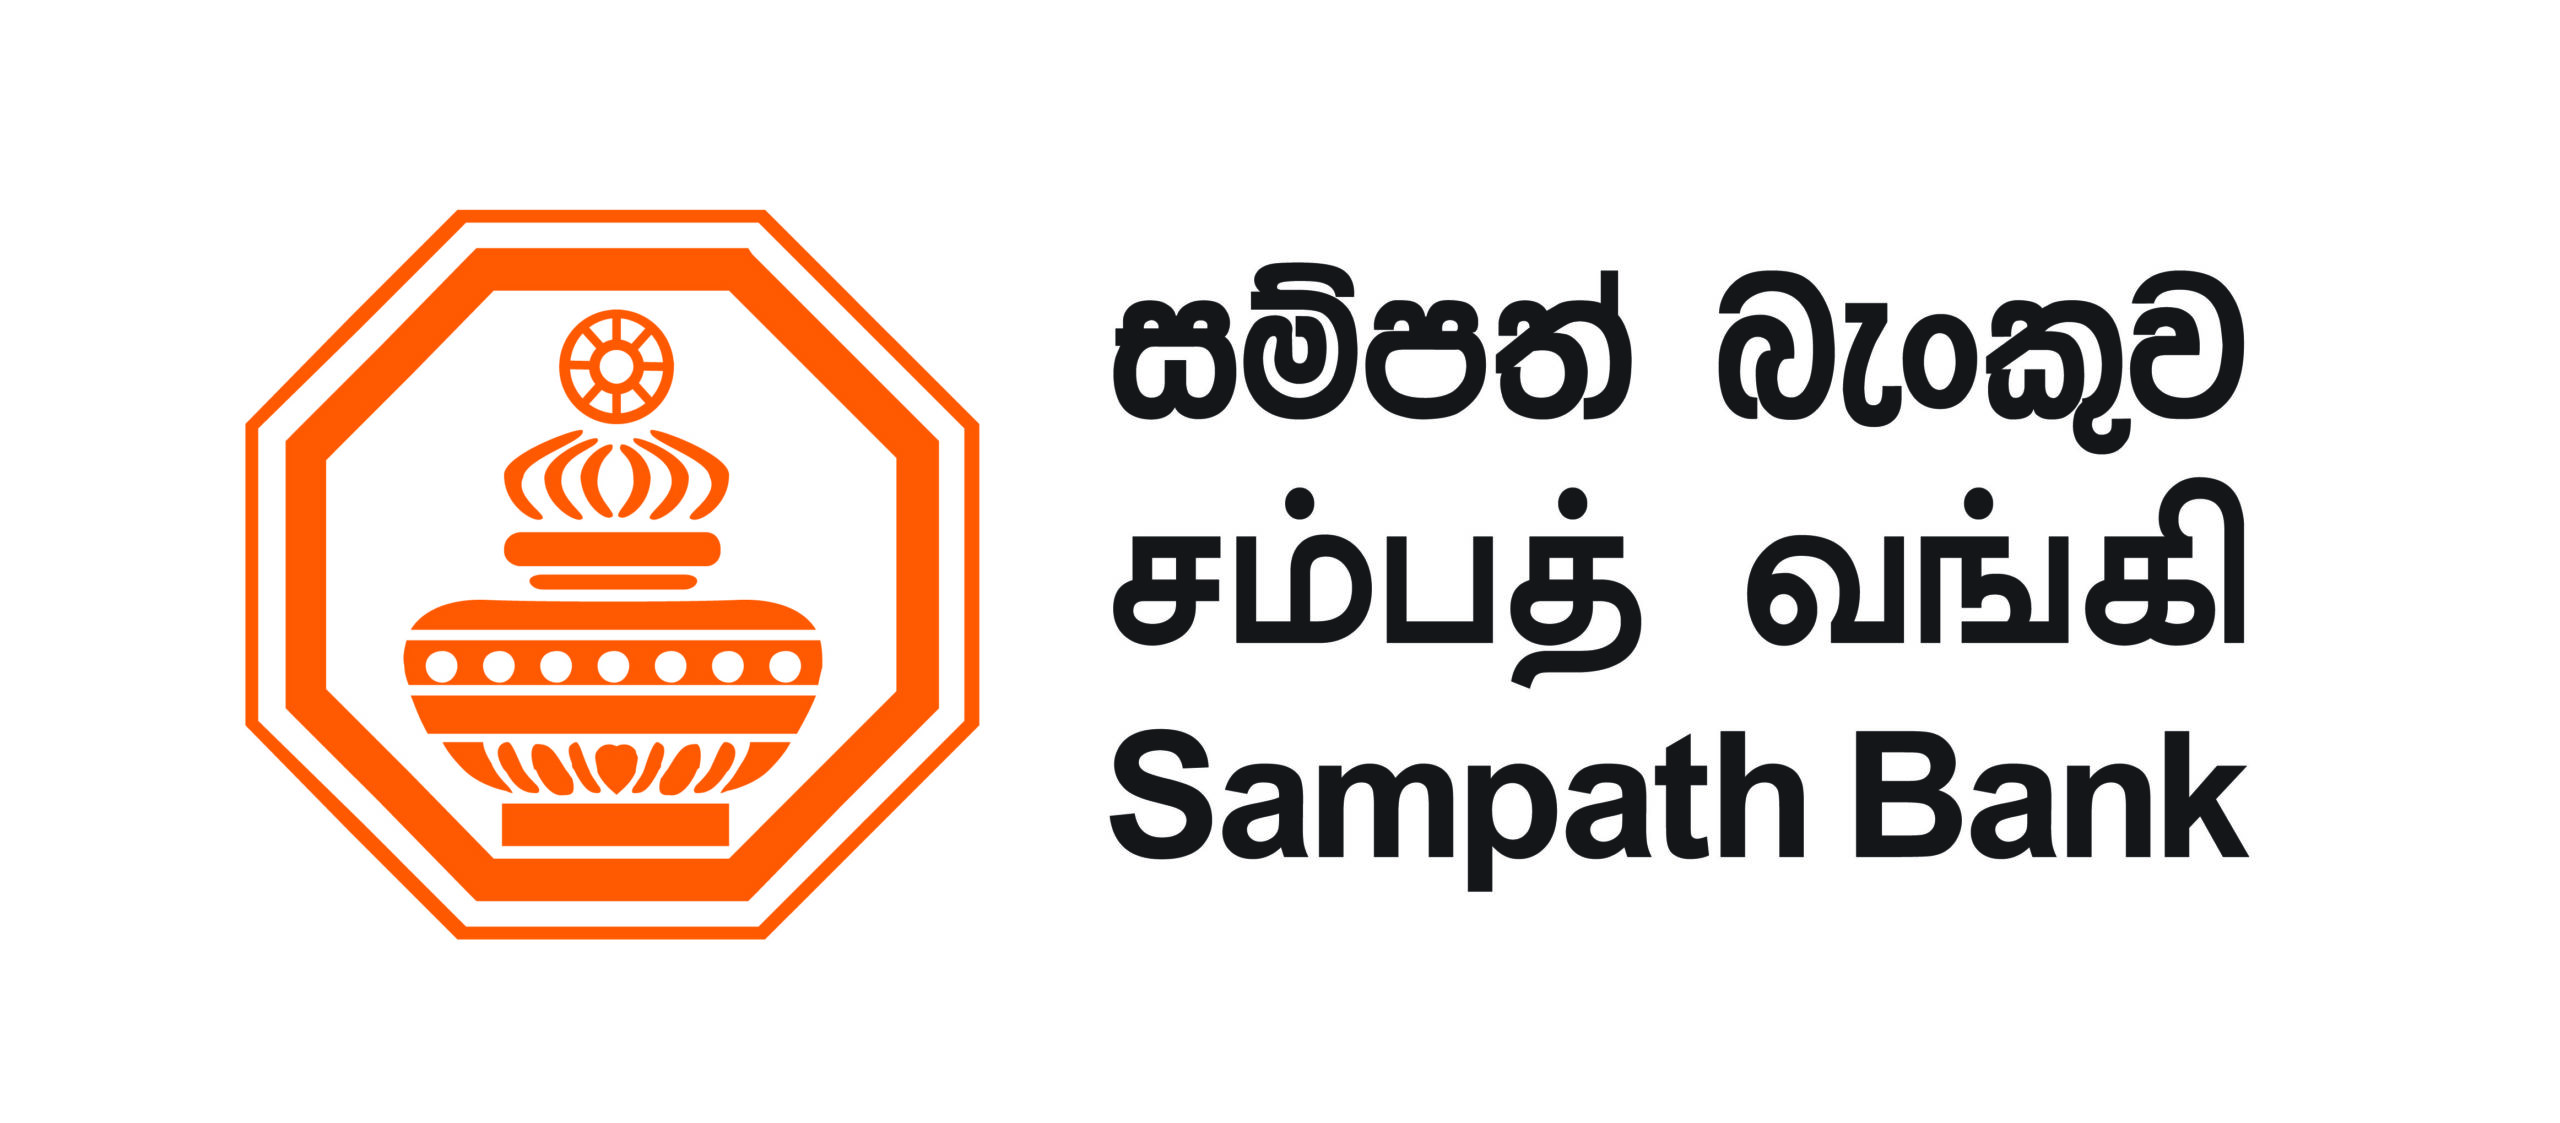 LARST FINEL SAMPATH LOGO